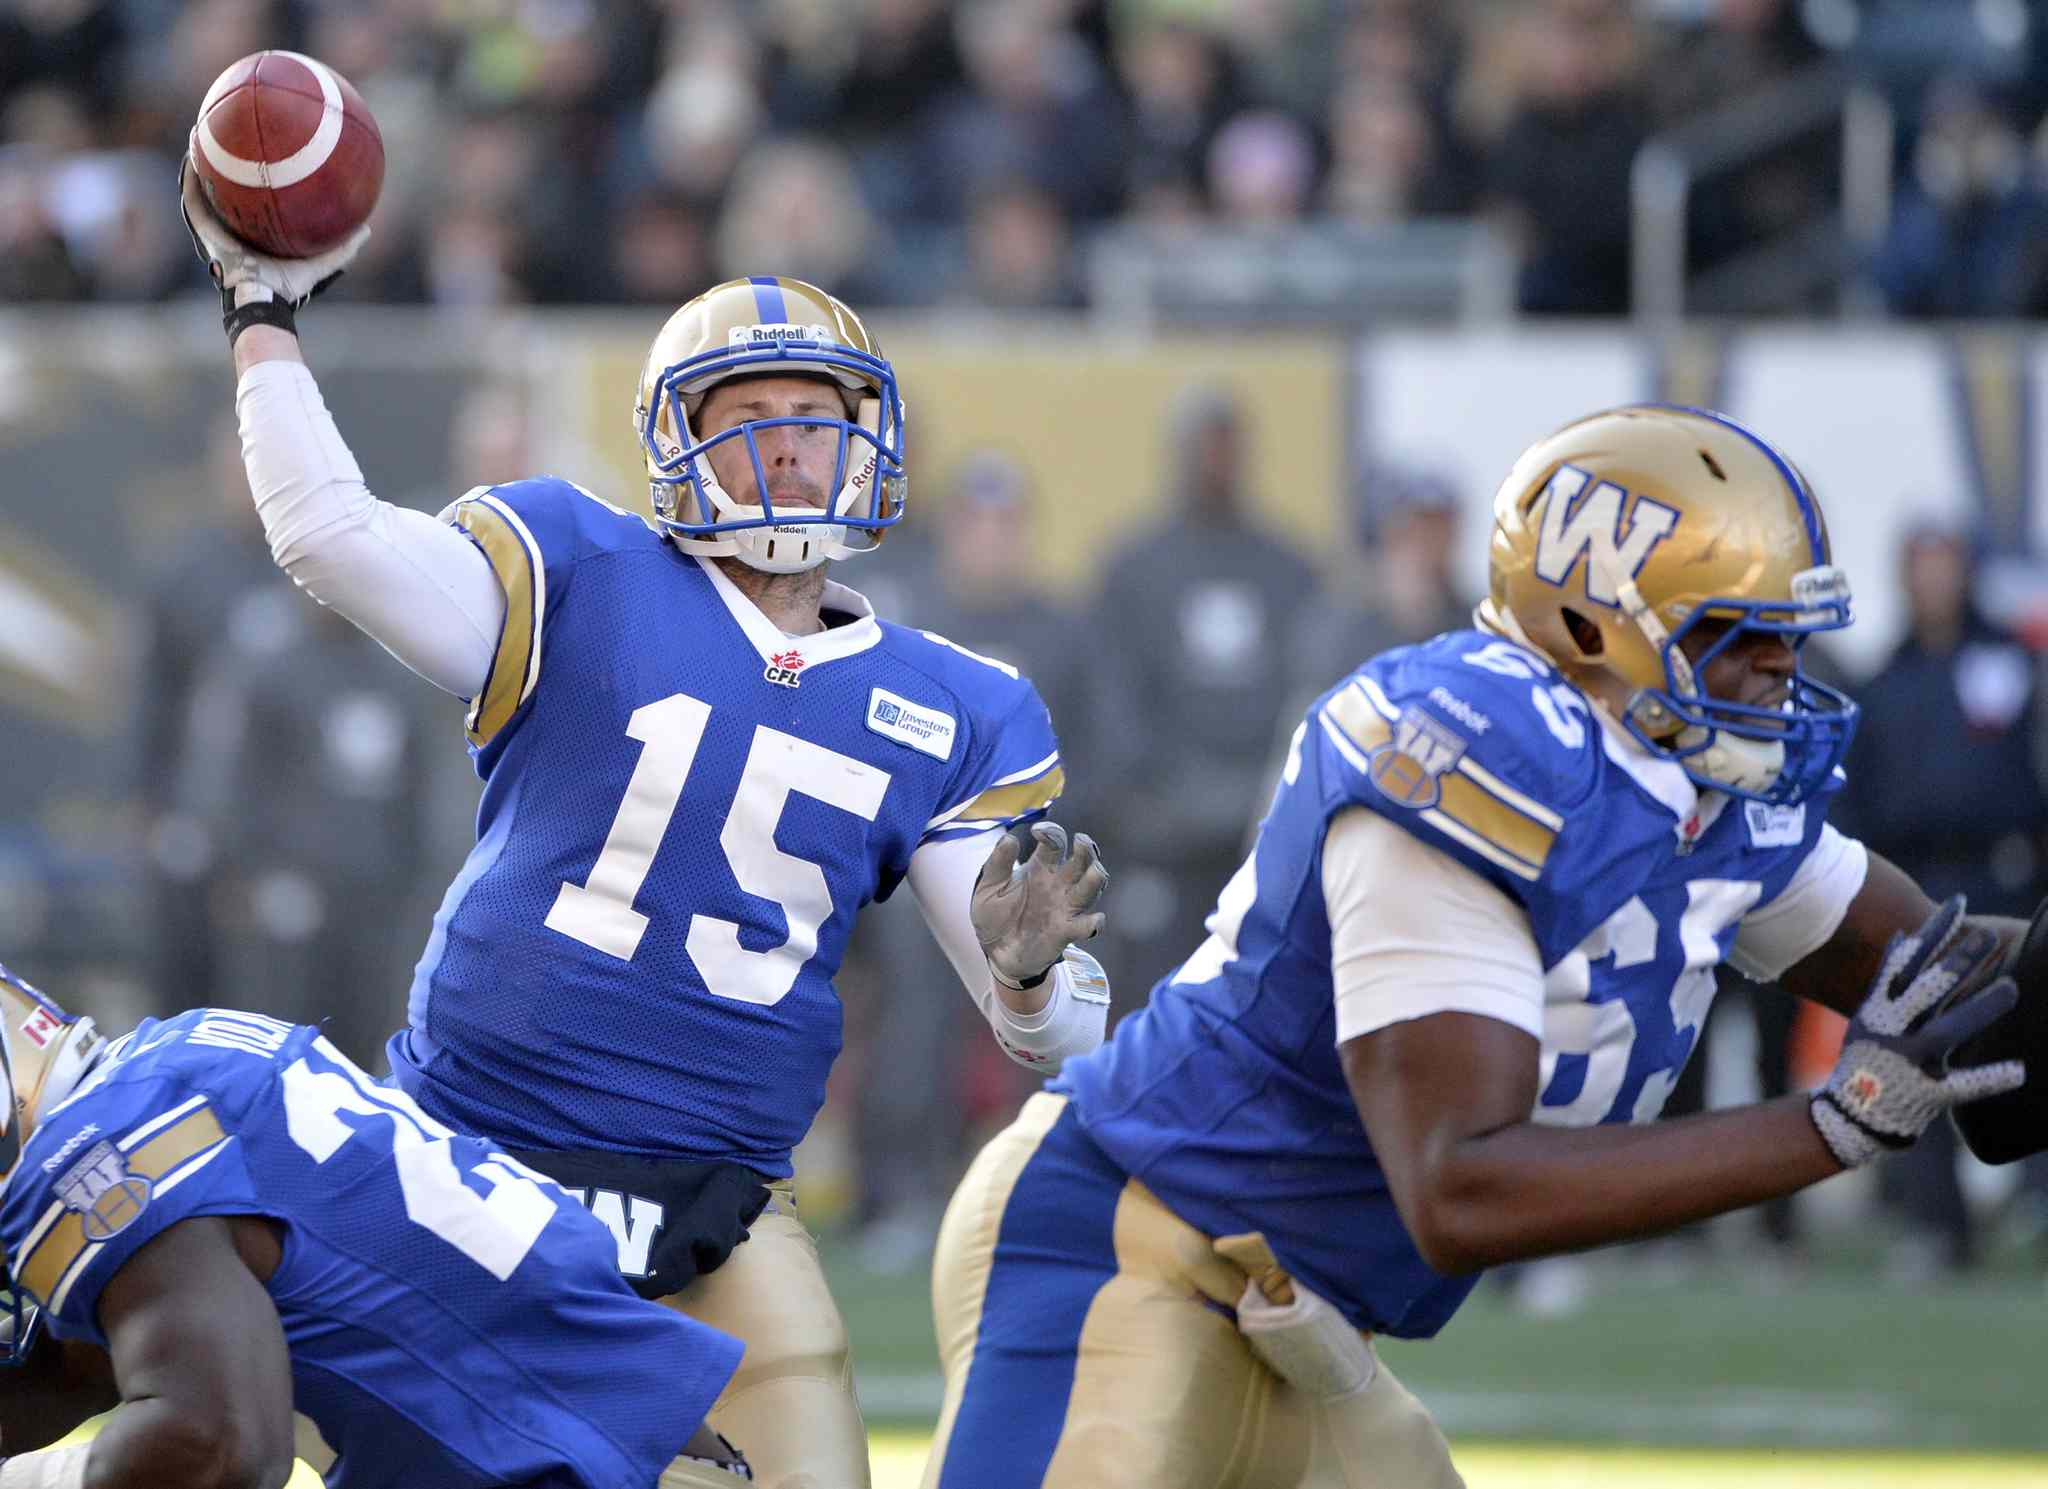 Winnipeg Blue Bombers quarterback Max Hall (15) makes a pass against the Hamilton Tiger-Cats during the second half.